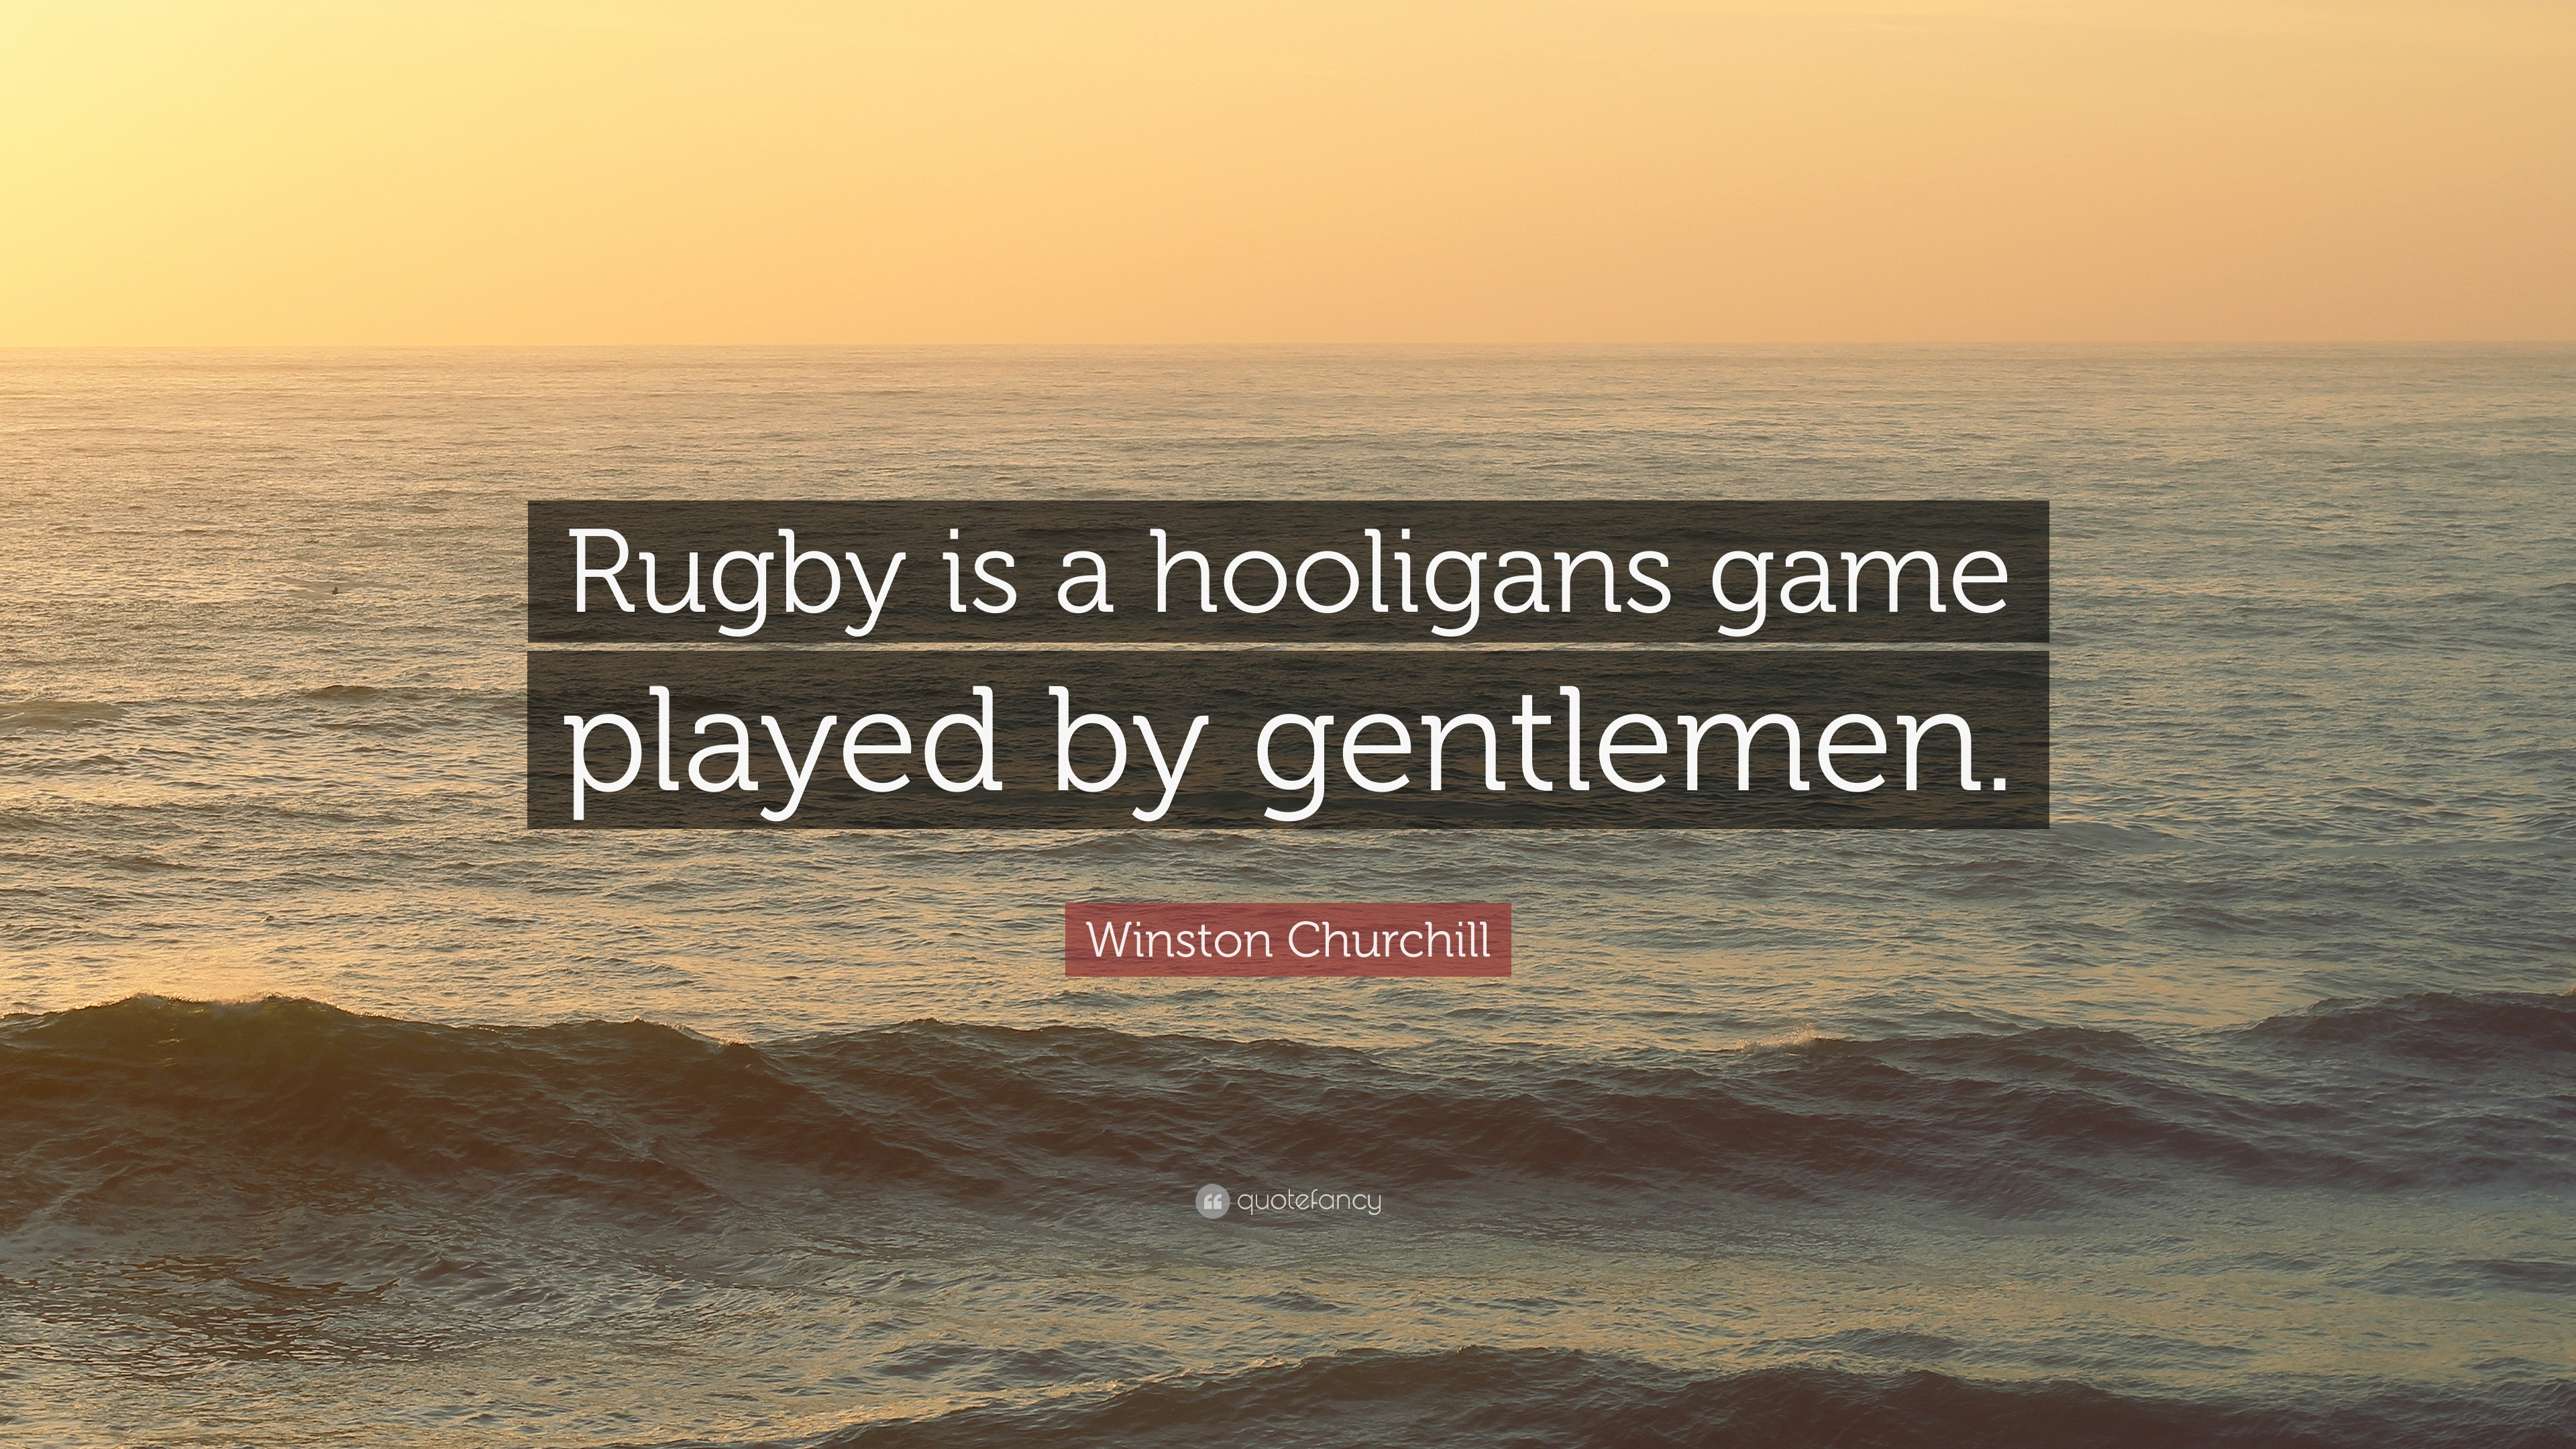 Rugby is a hooligans game played by gentlemen - Quotefancy